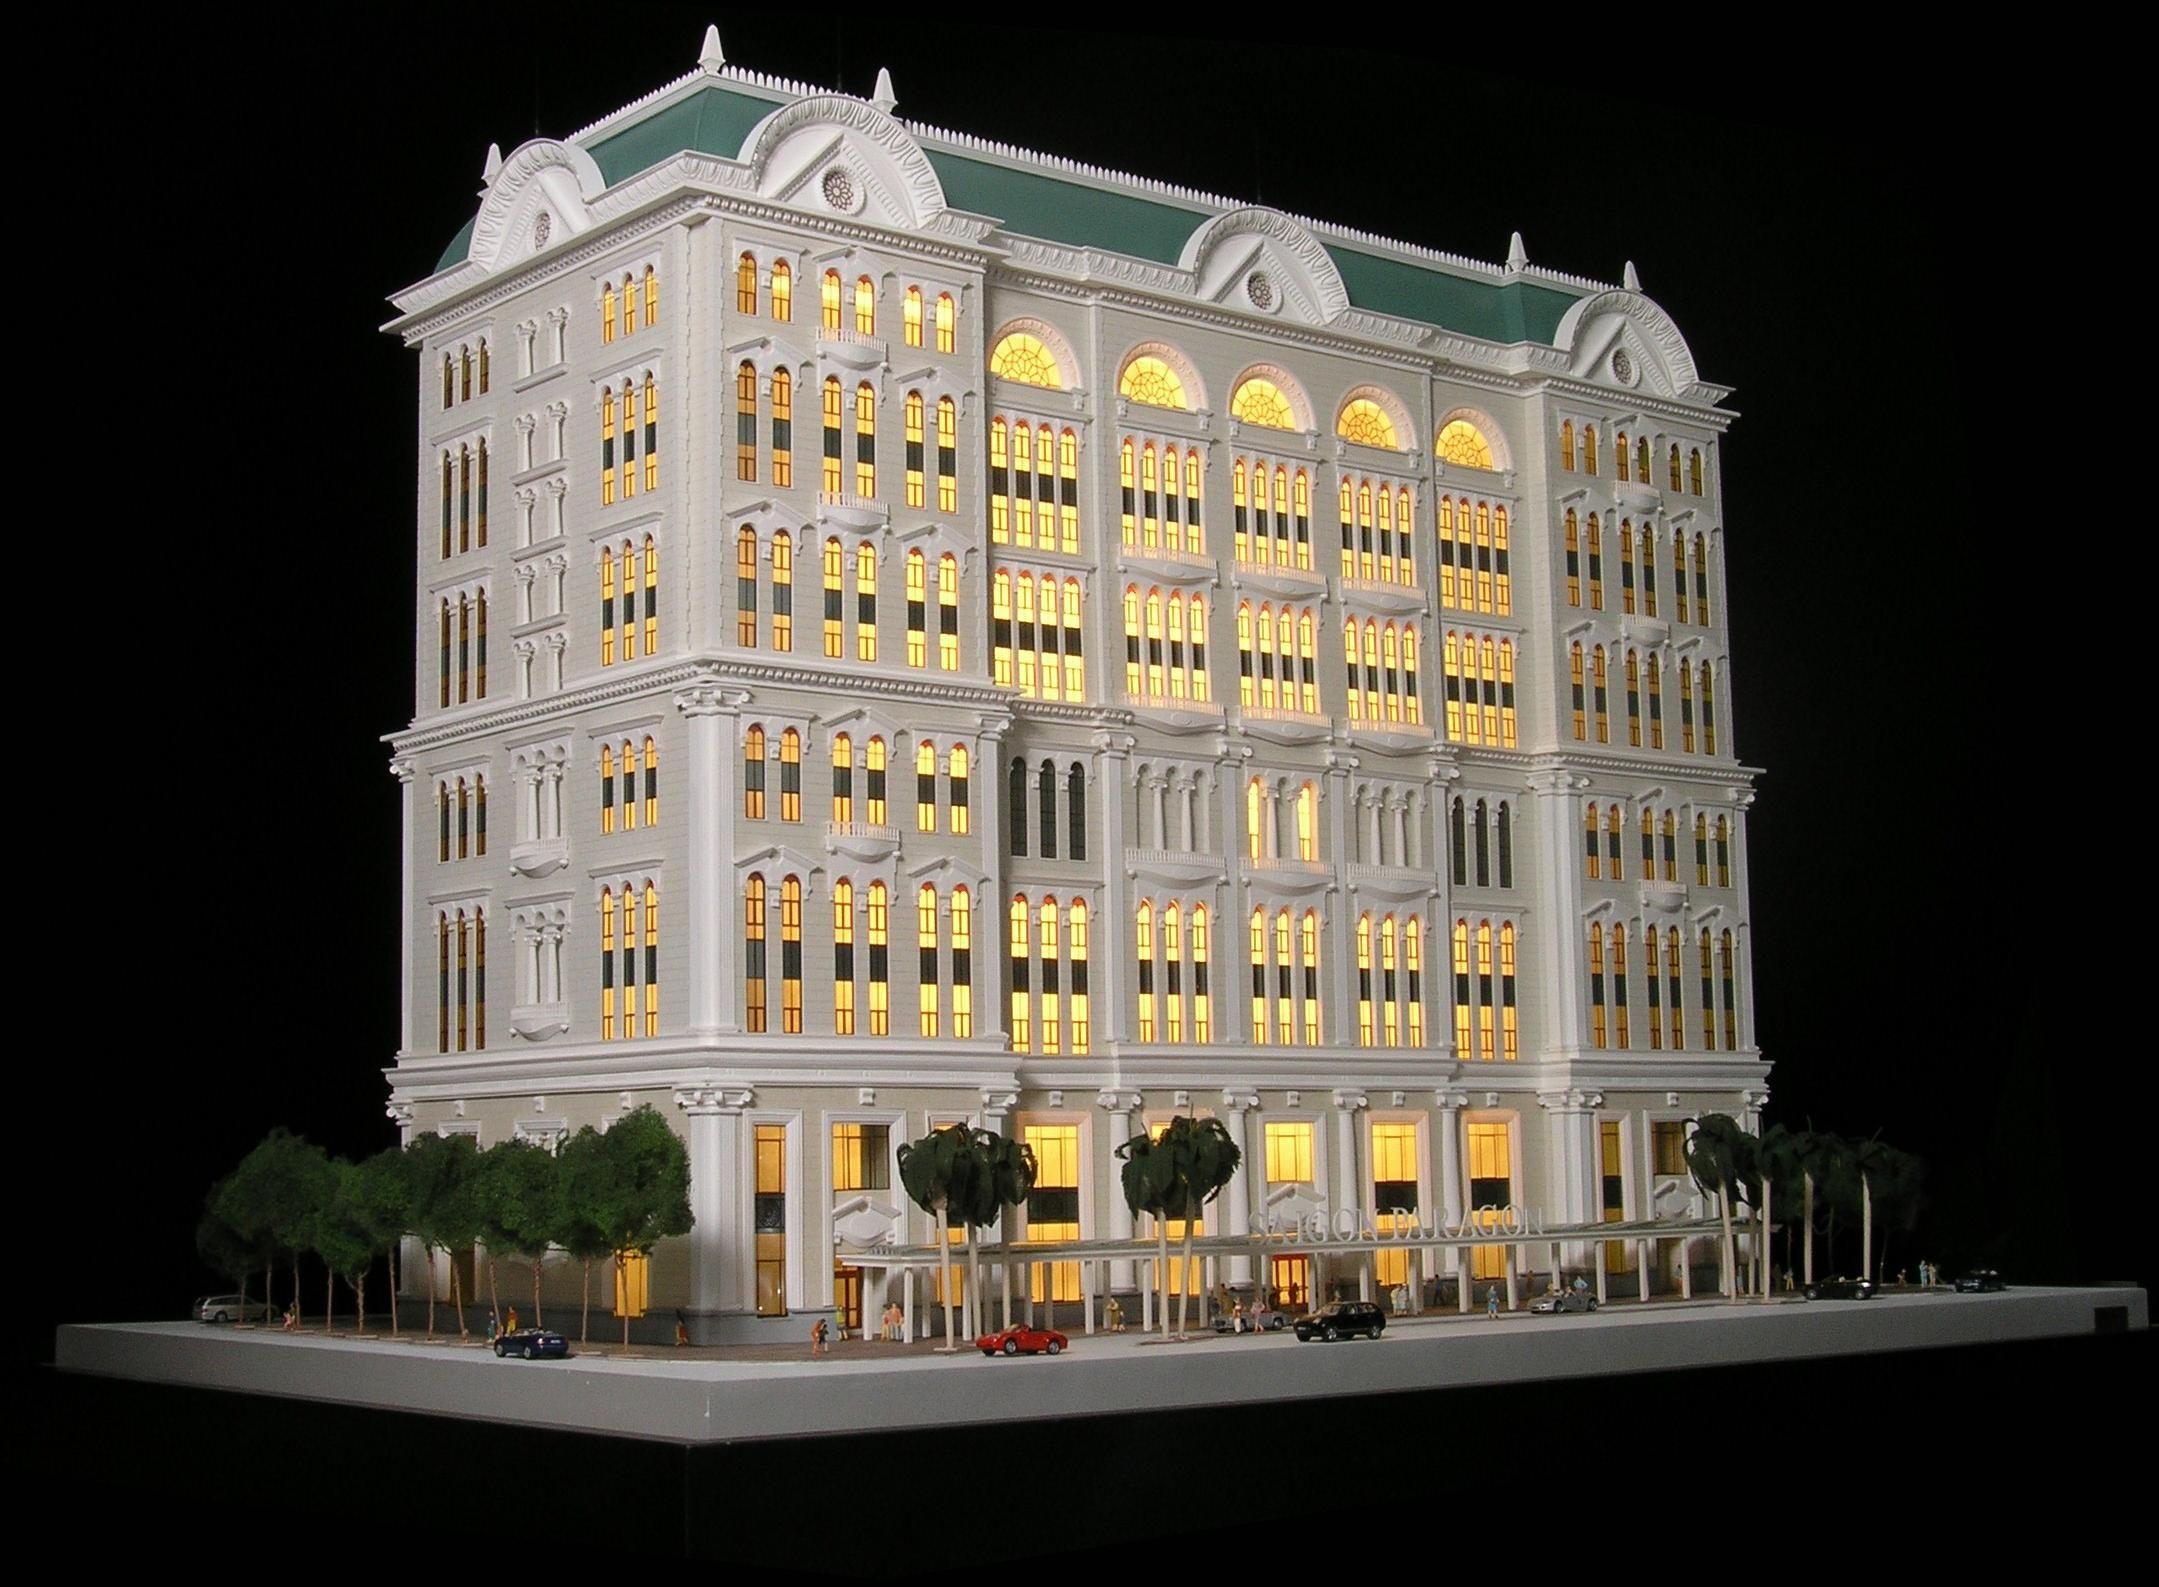 architectural engineering models. Downtown Building Model. Architectural Engineering Models